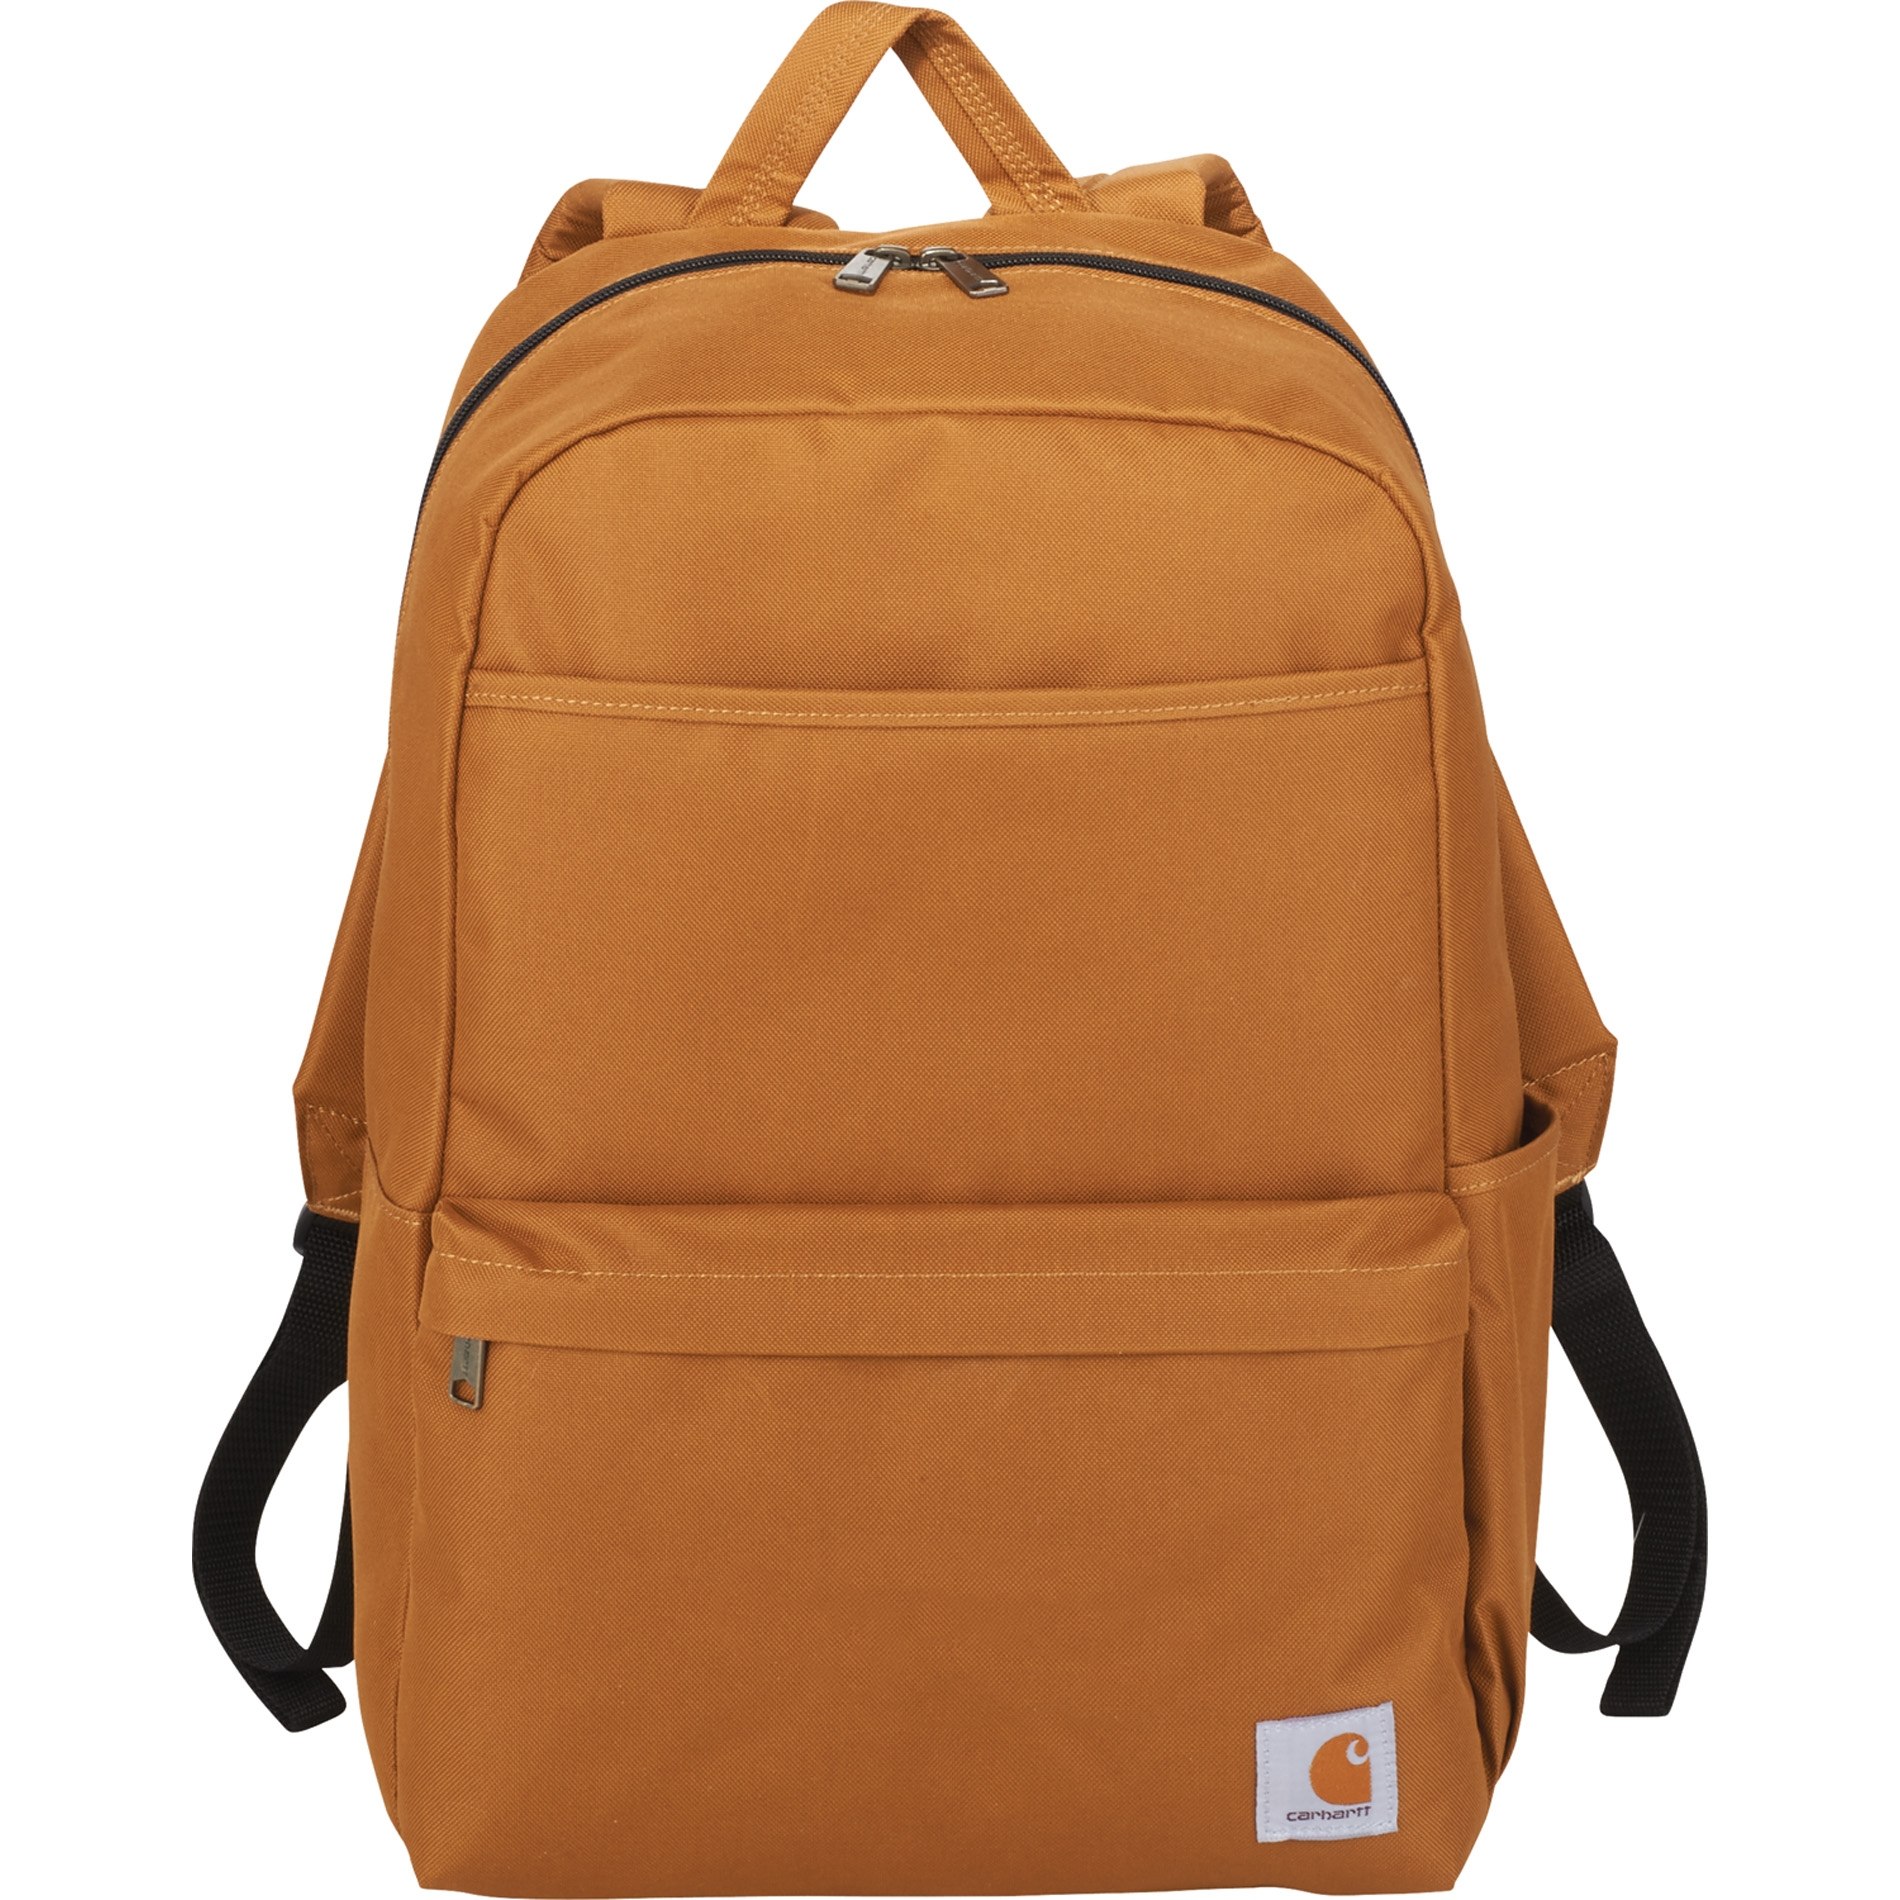 Carhartt 1889-47 - 15 Computer Foundations Backpack